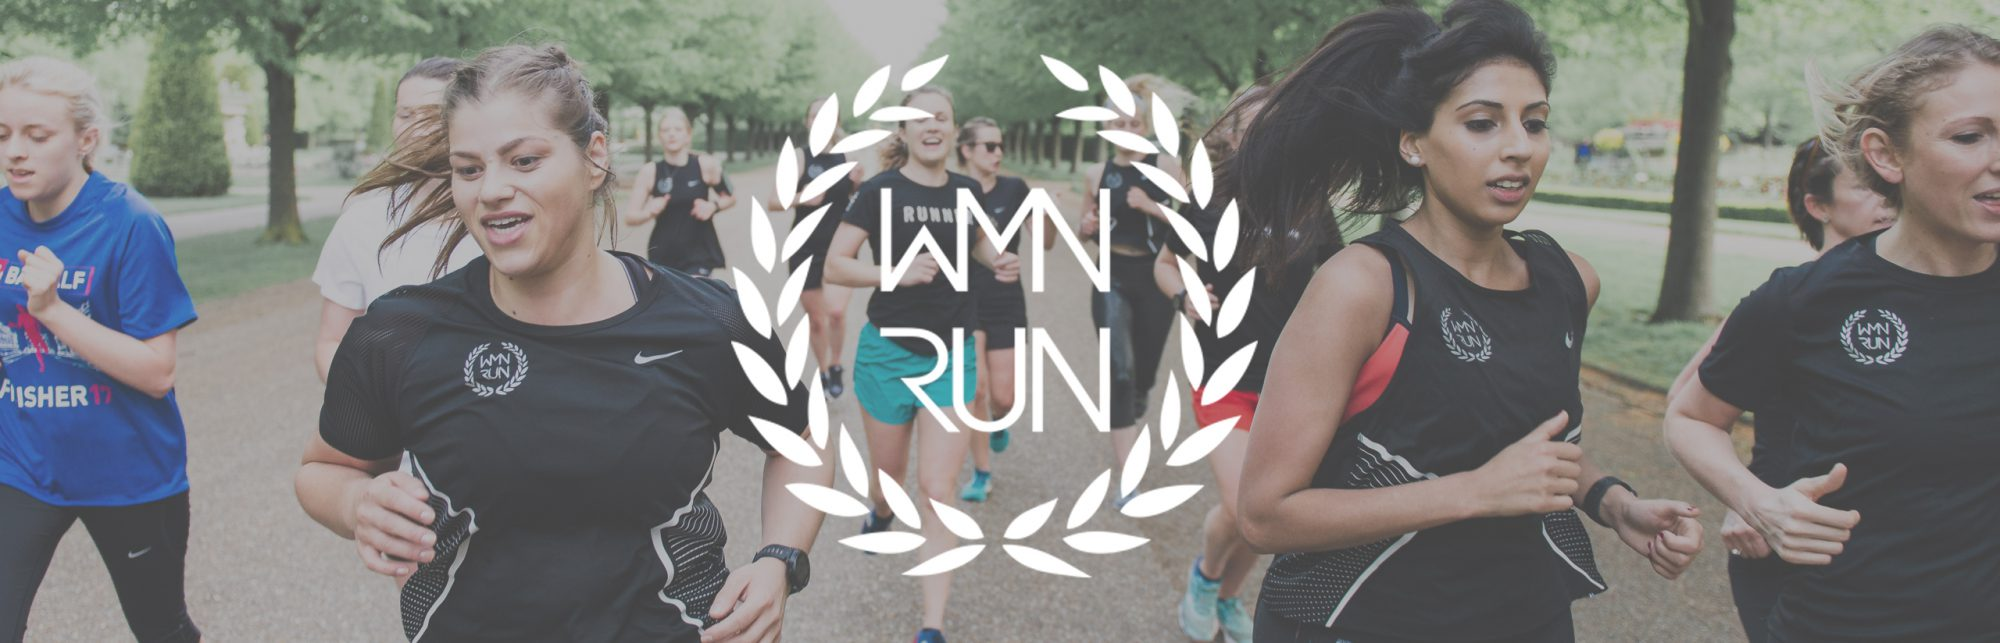 cropped-wmn-run-header1